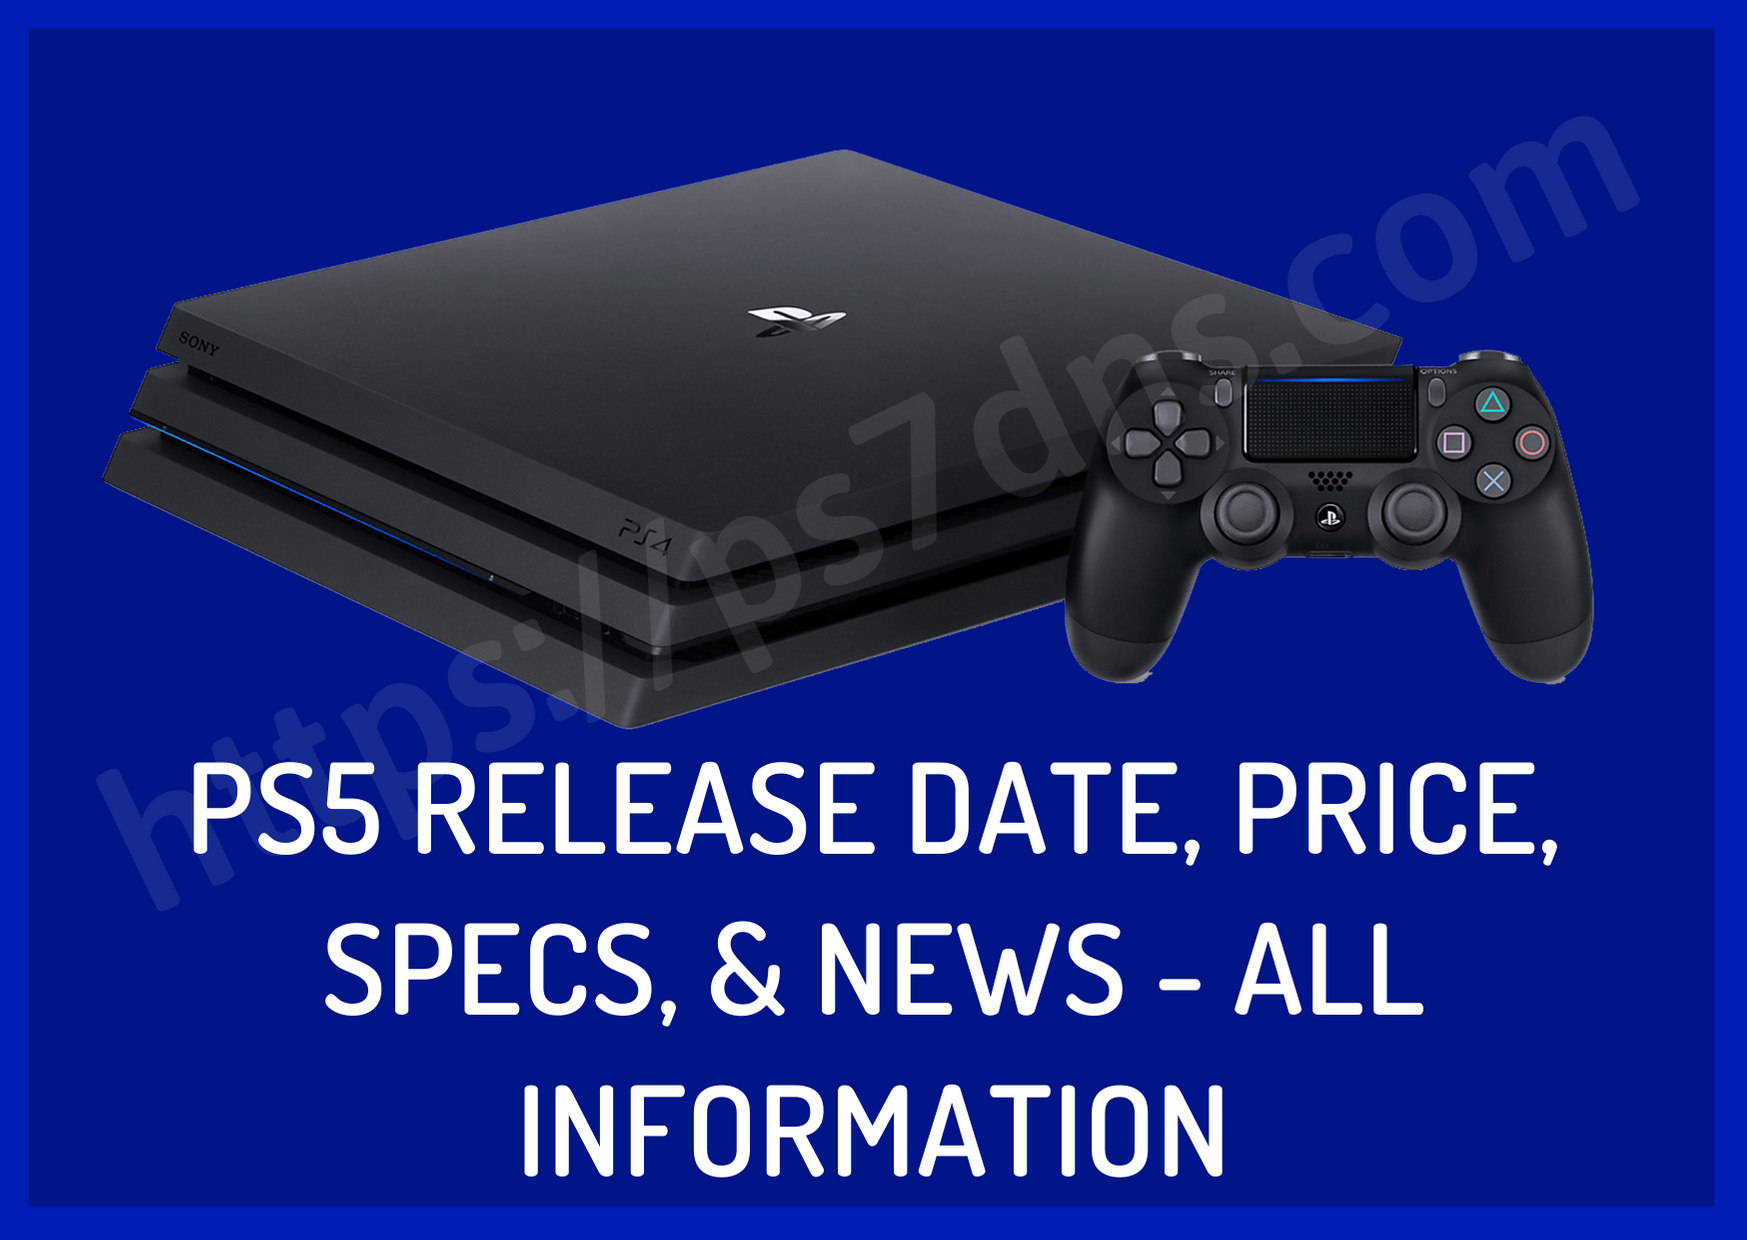 PS5 Release Date, Price, Specs, & News - All Information